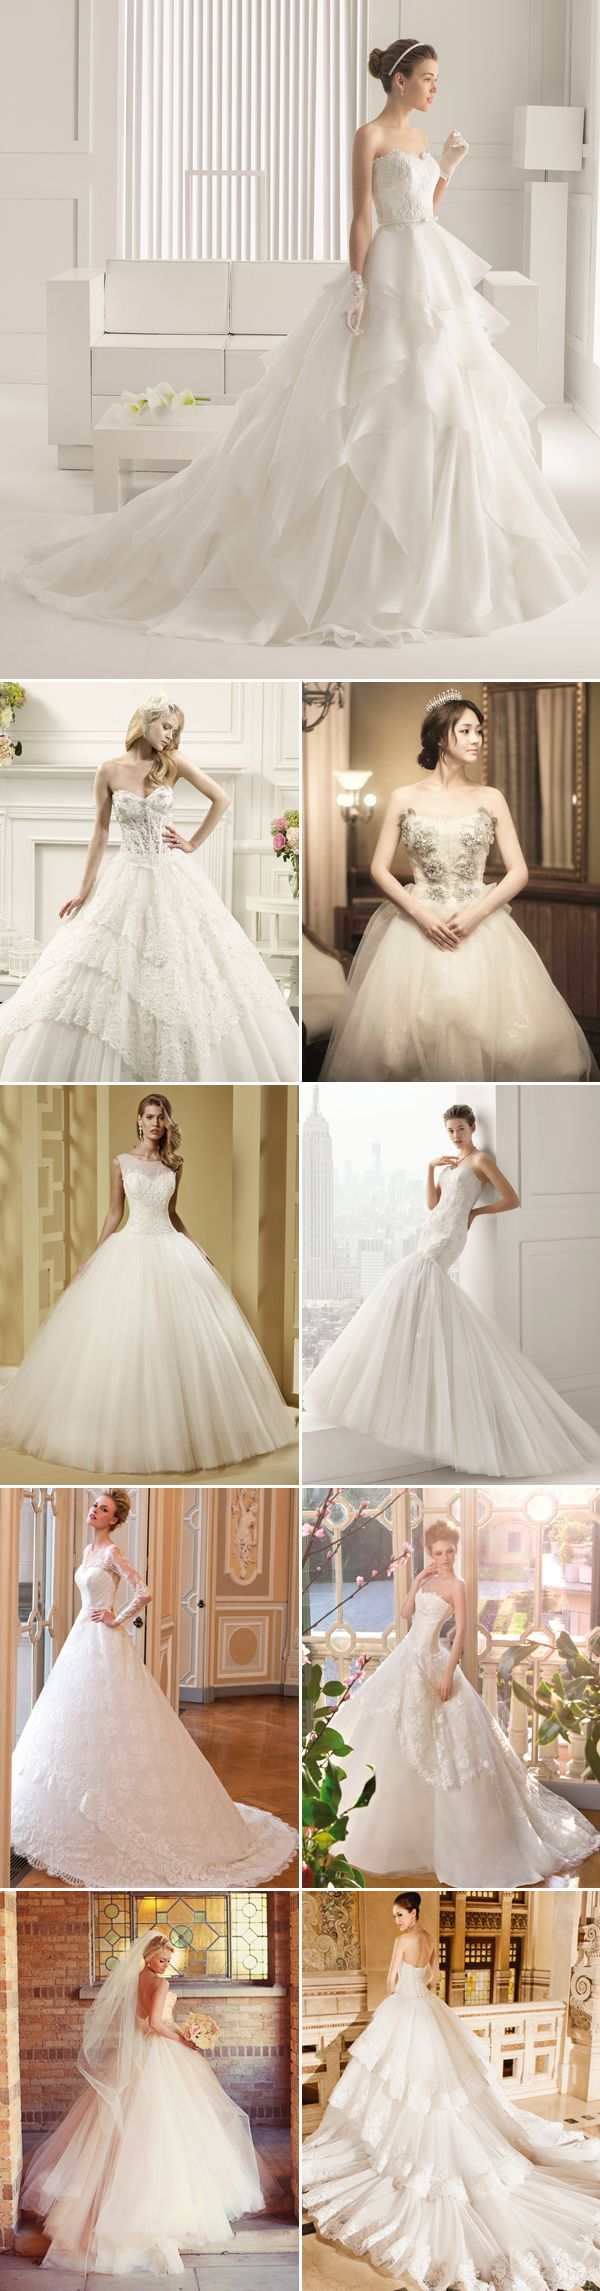 37 Princess Royal Ball Gowns with a touch of Glam! Pure Elegance